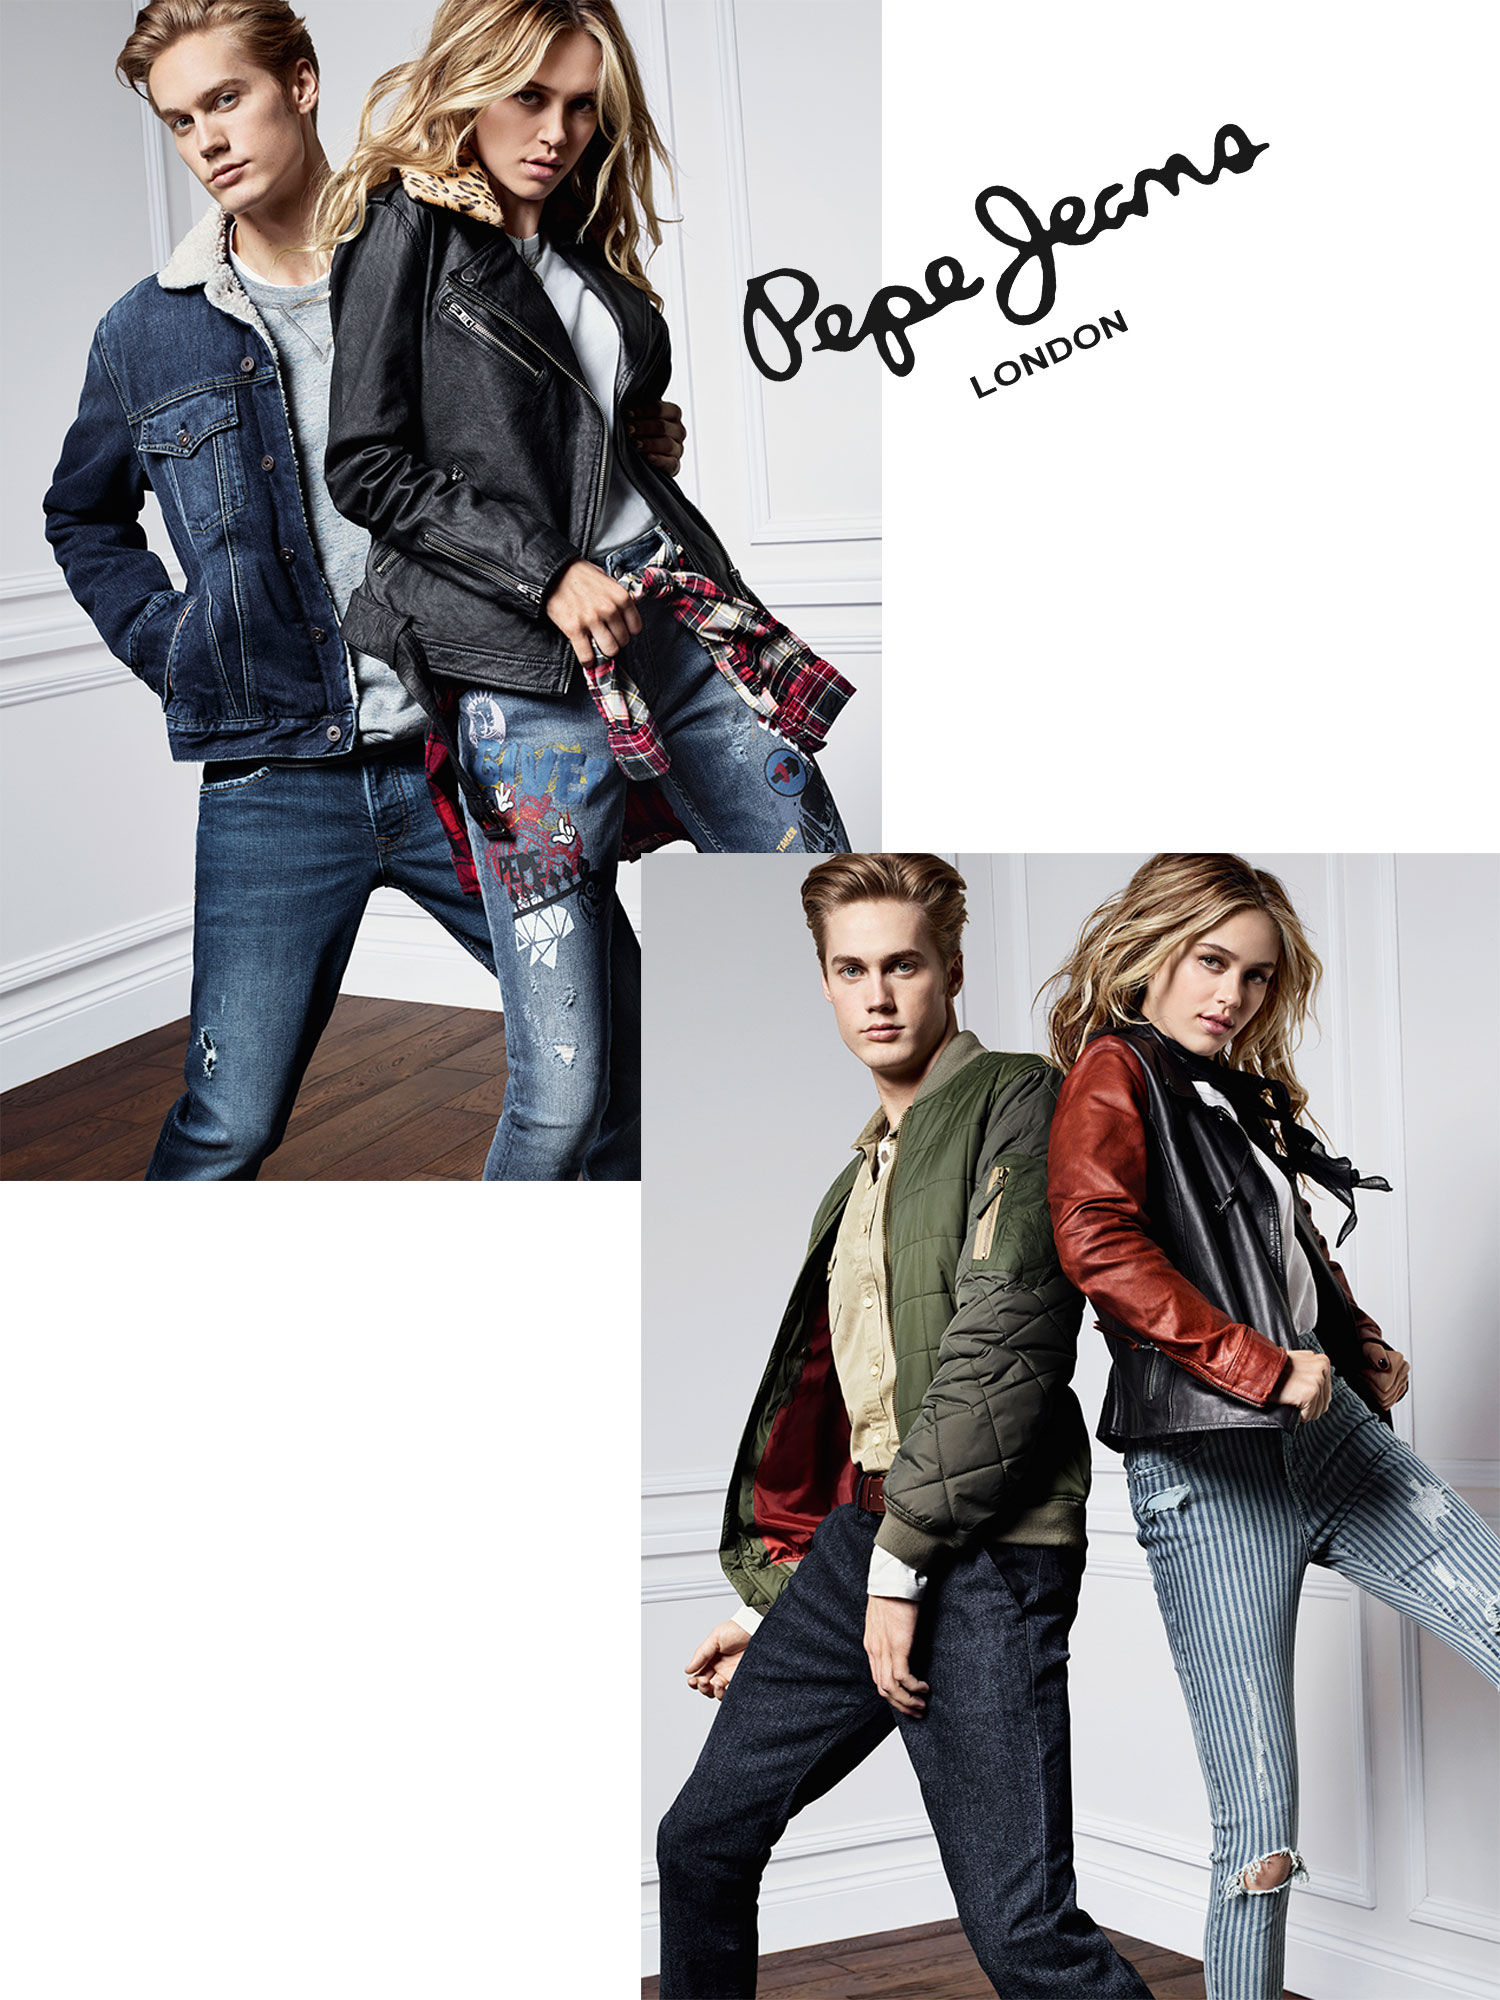 Distribution Jeans Brands Pepe Aw17 Global 0fvwPw